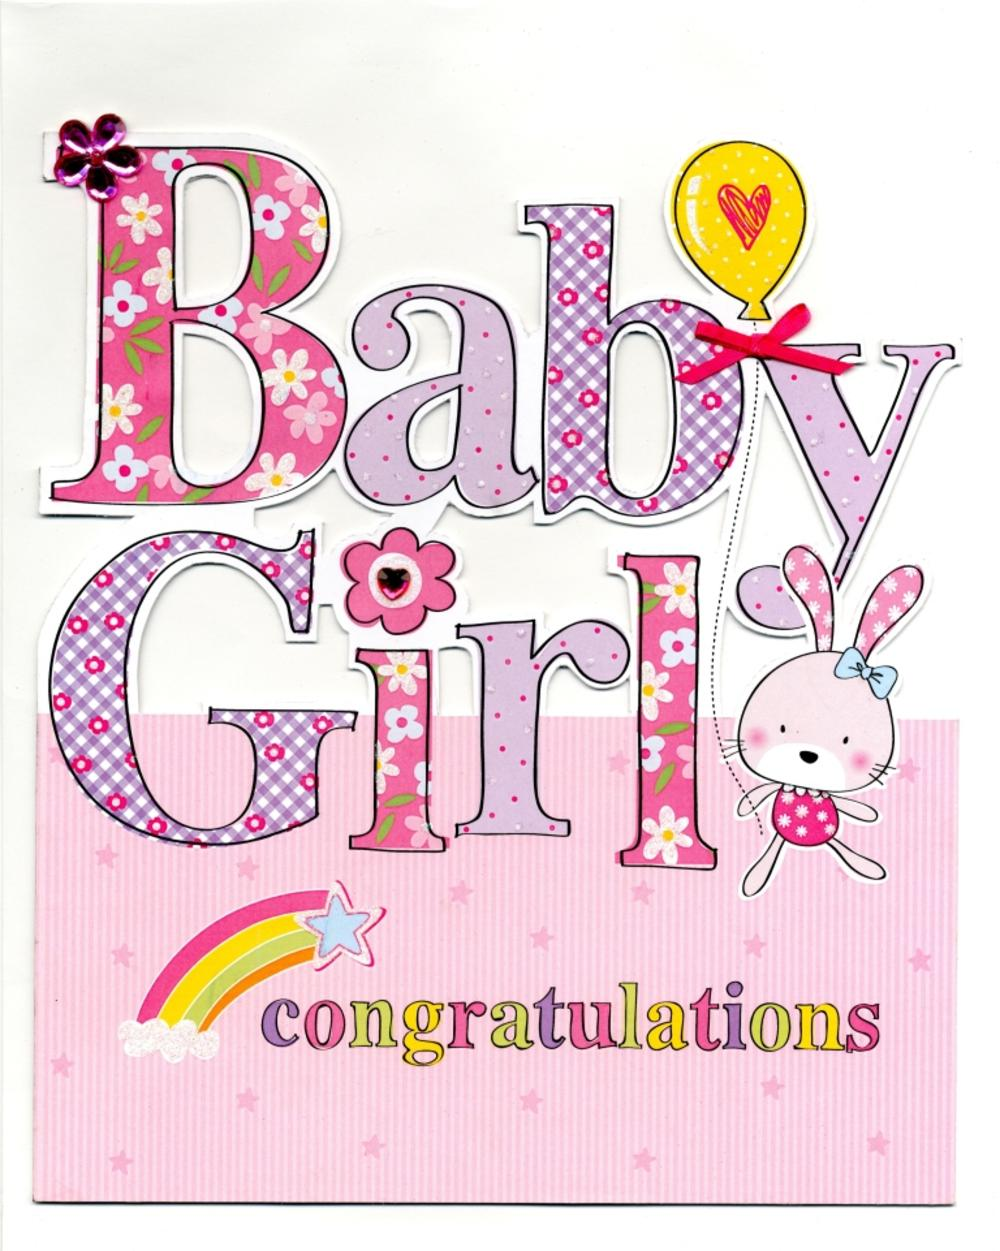 Large new baby girl congratulations greeting card cards love kates large new baby girl congratulations greeting card kristyandbryce Images